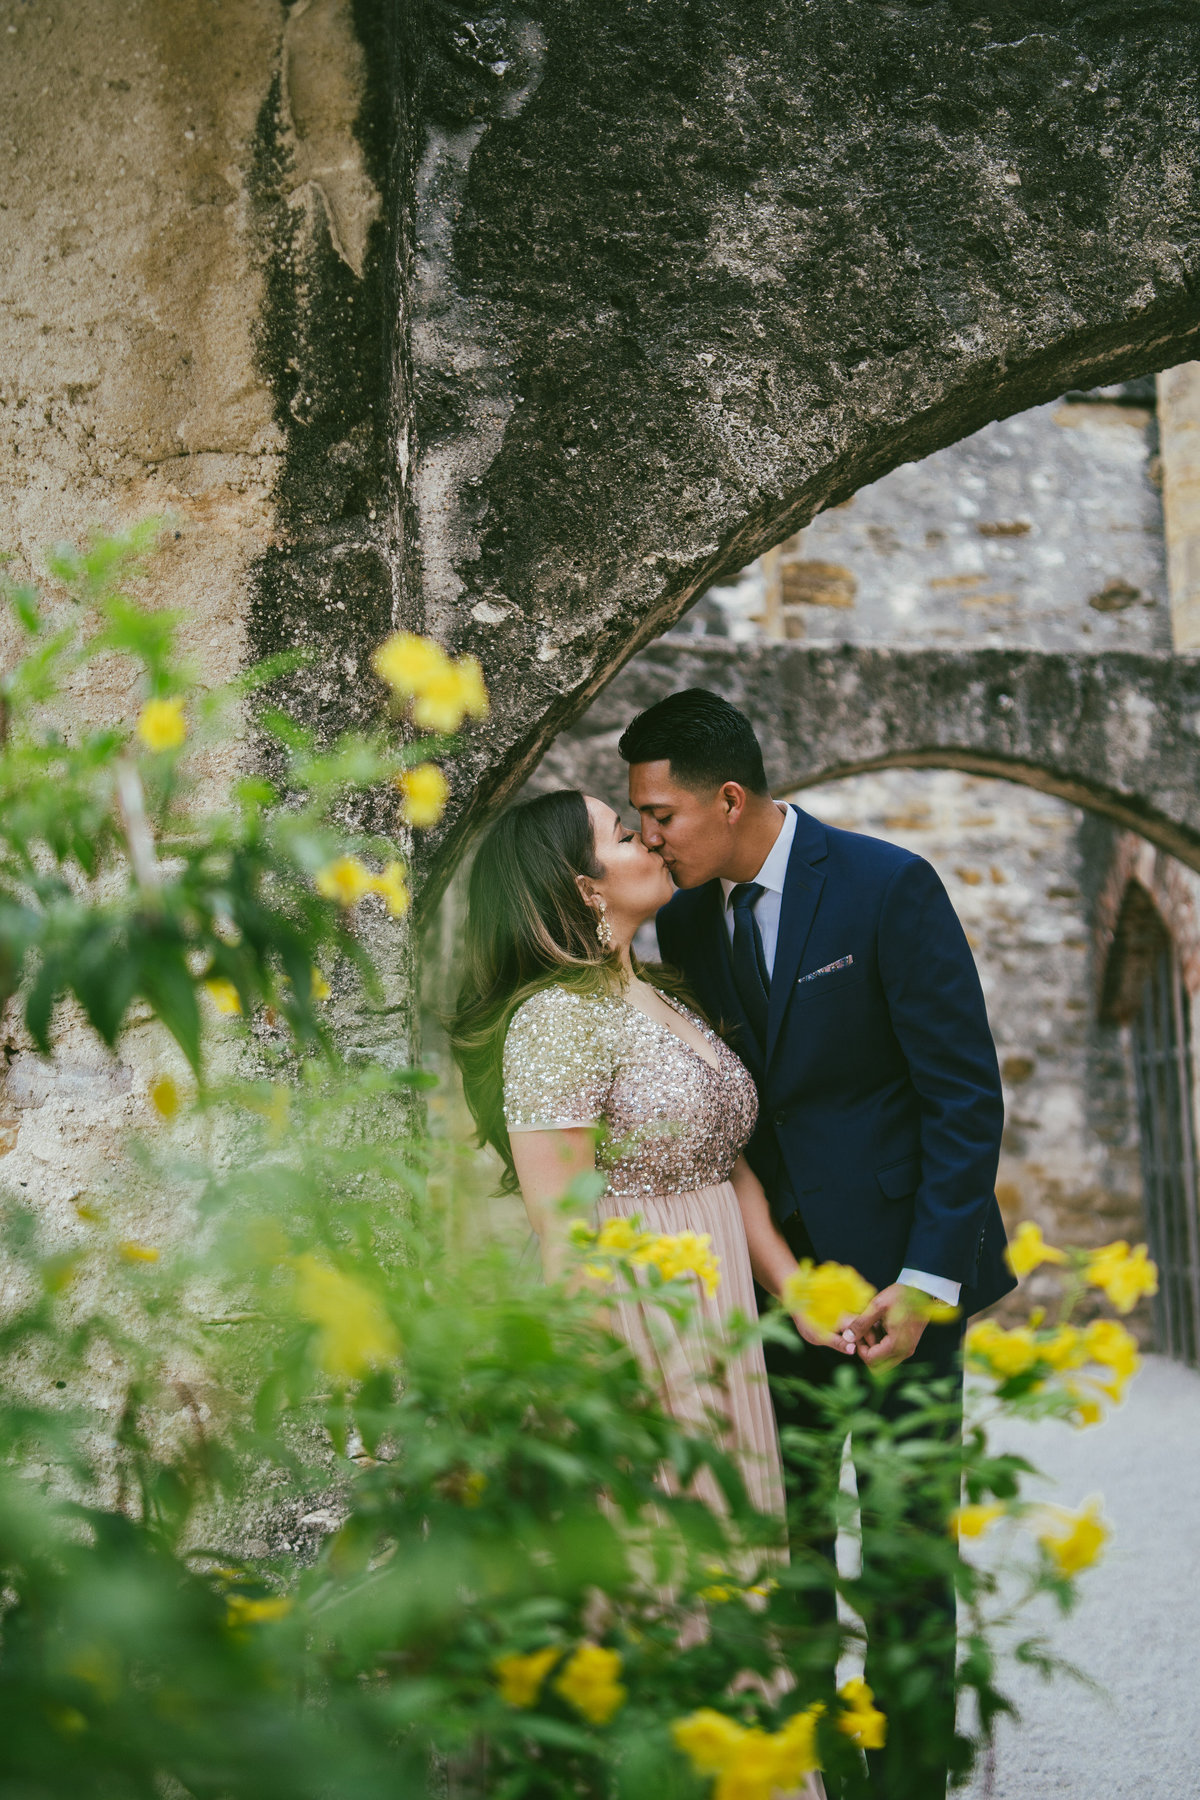 Engaged man and woman kissing behind yellow flowers and under an arch at Mission San Jose in San Antonio, Texas.